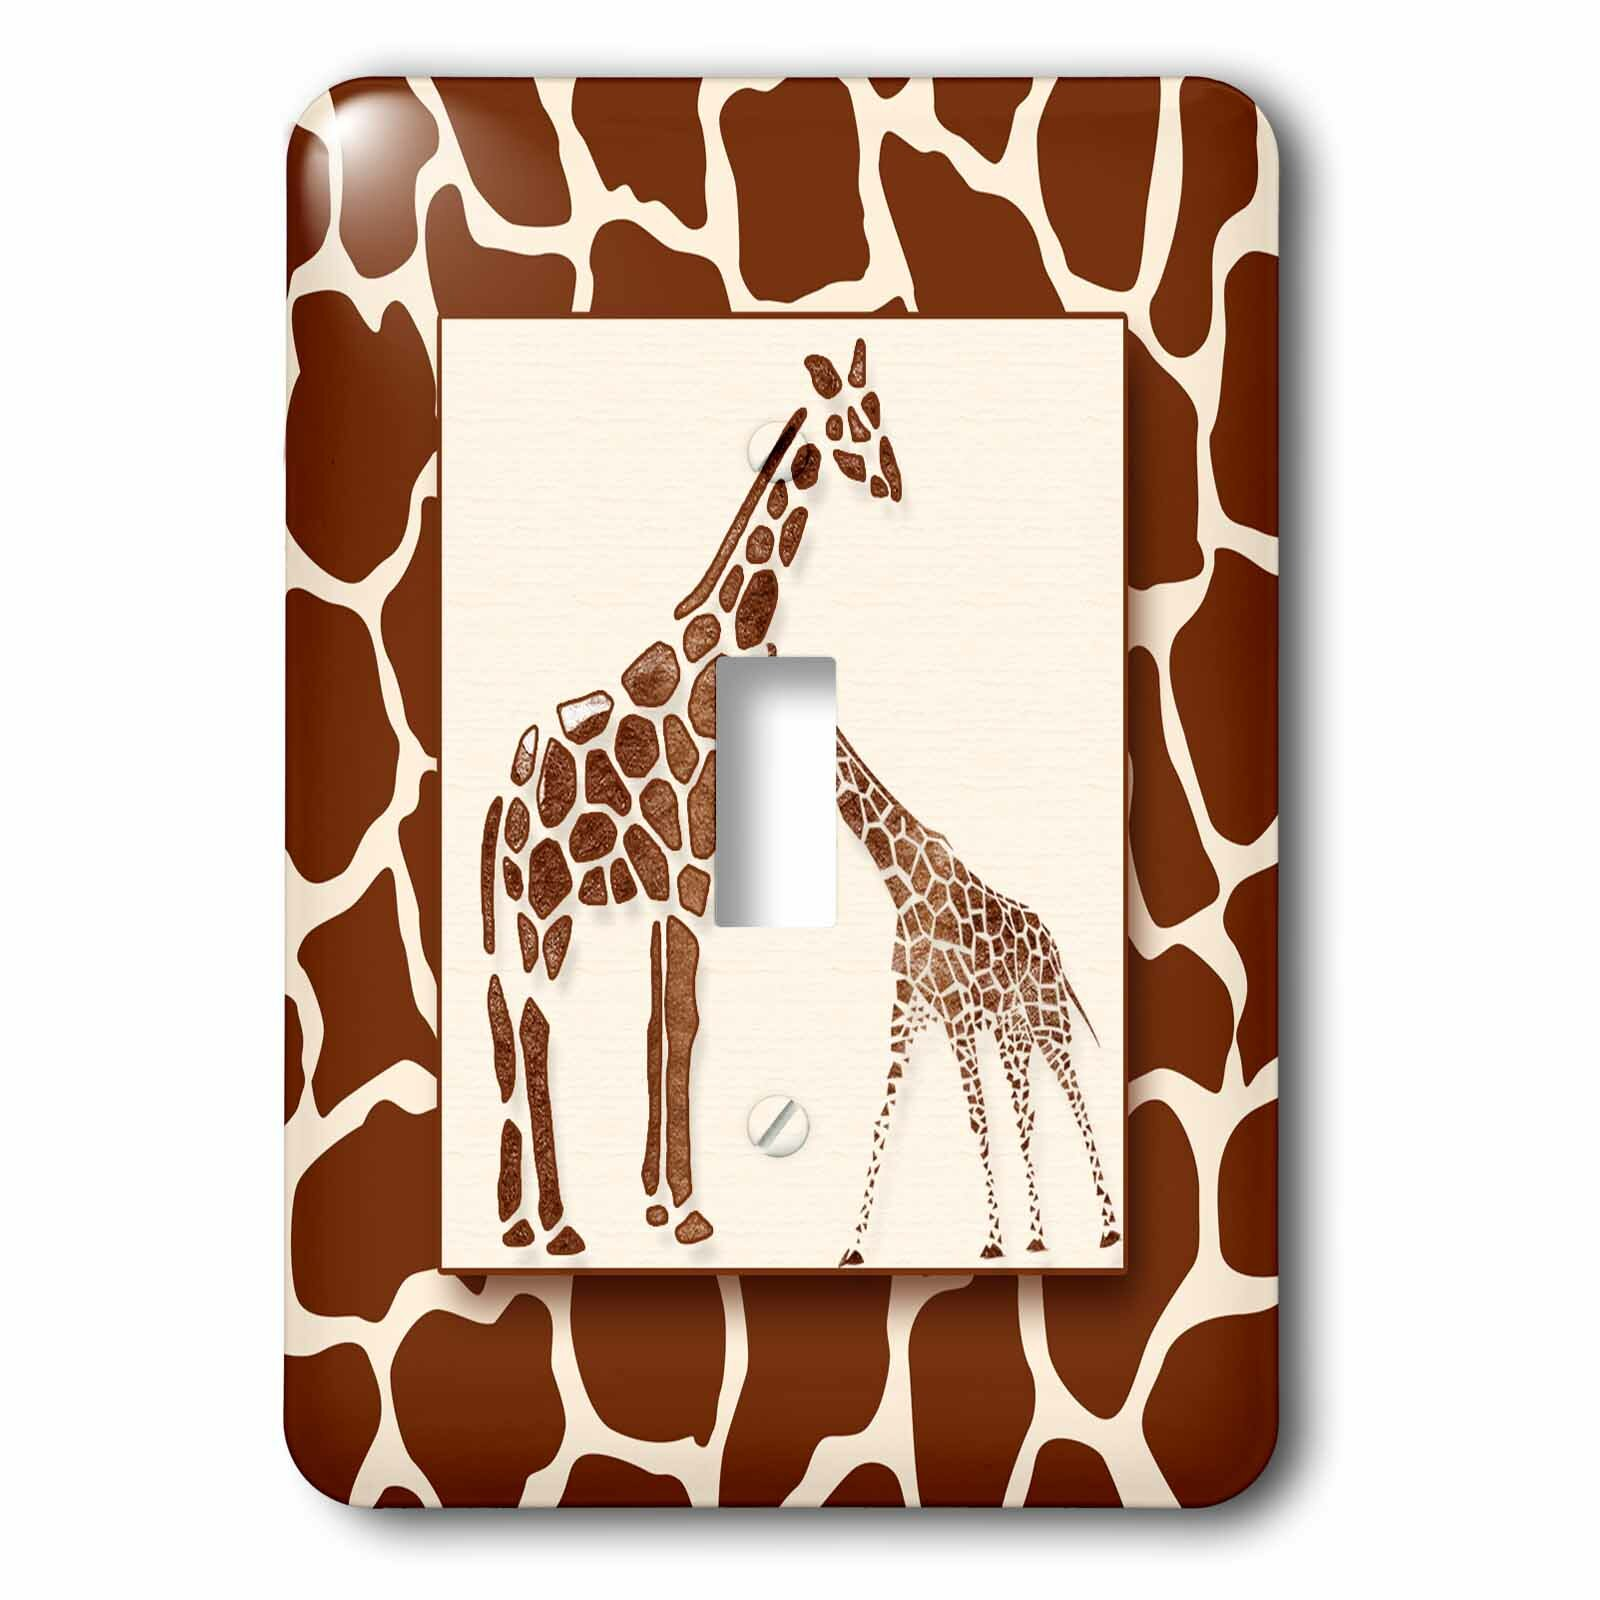 Brown Giraffe Print Animal Decorative Single Toggle Light Switch Plate Cover Handmade Products Home Kitchen